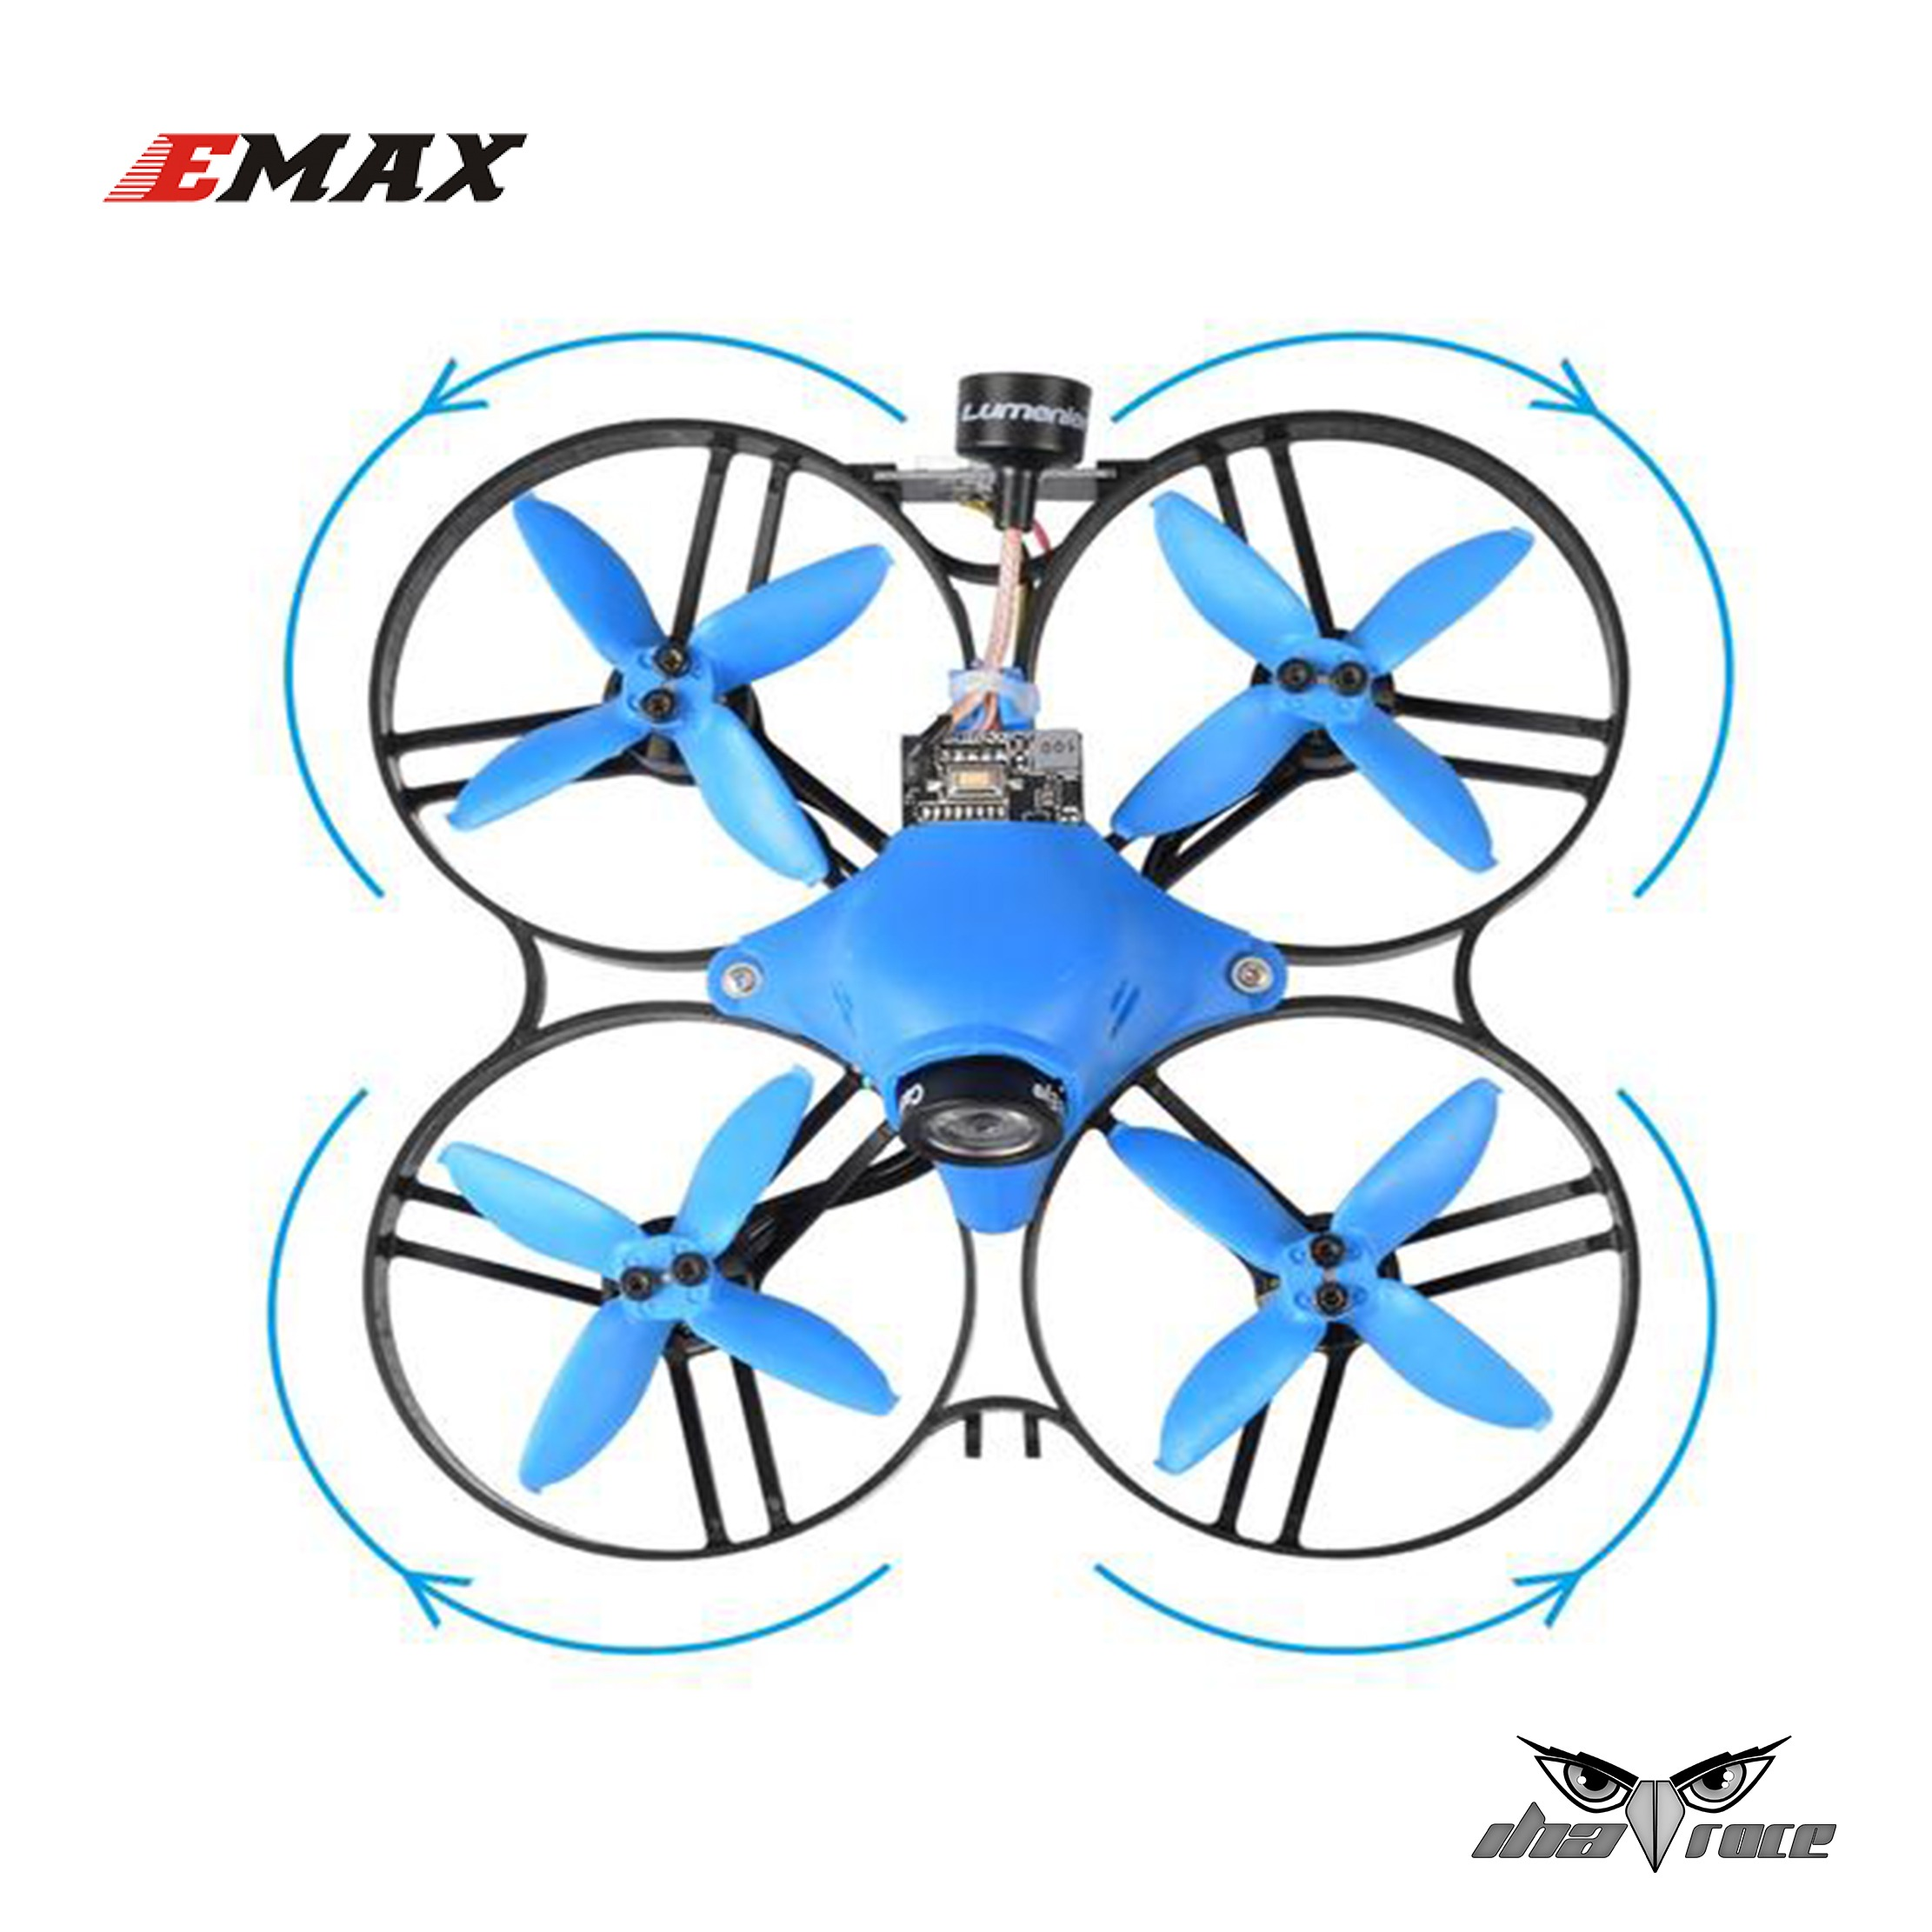 """Hélices Emax 2"""" 4 Palas (Eje 1.5 mm)"""